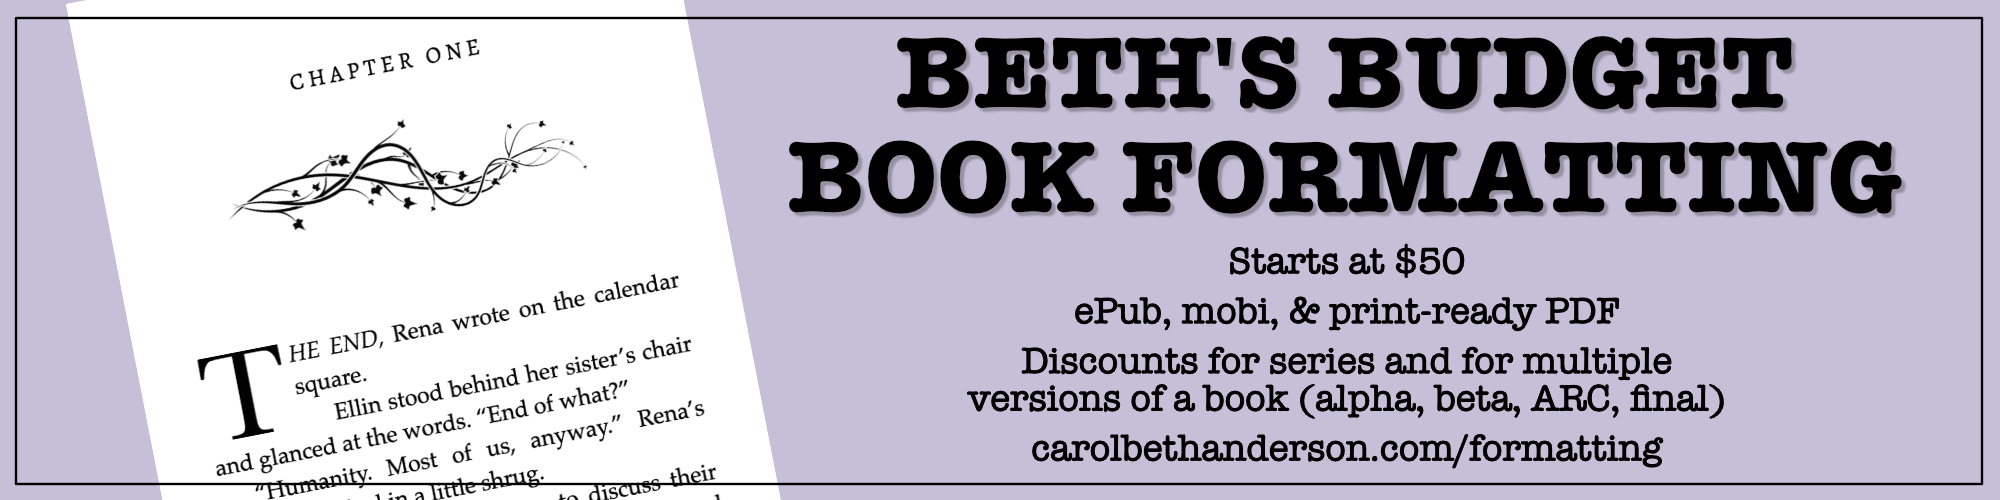 Banner for Beth's Budget Book Formatting